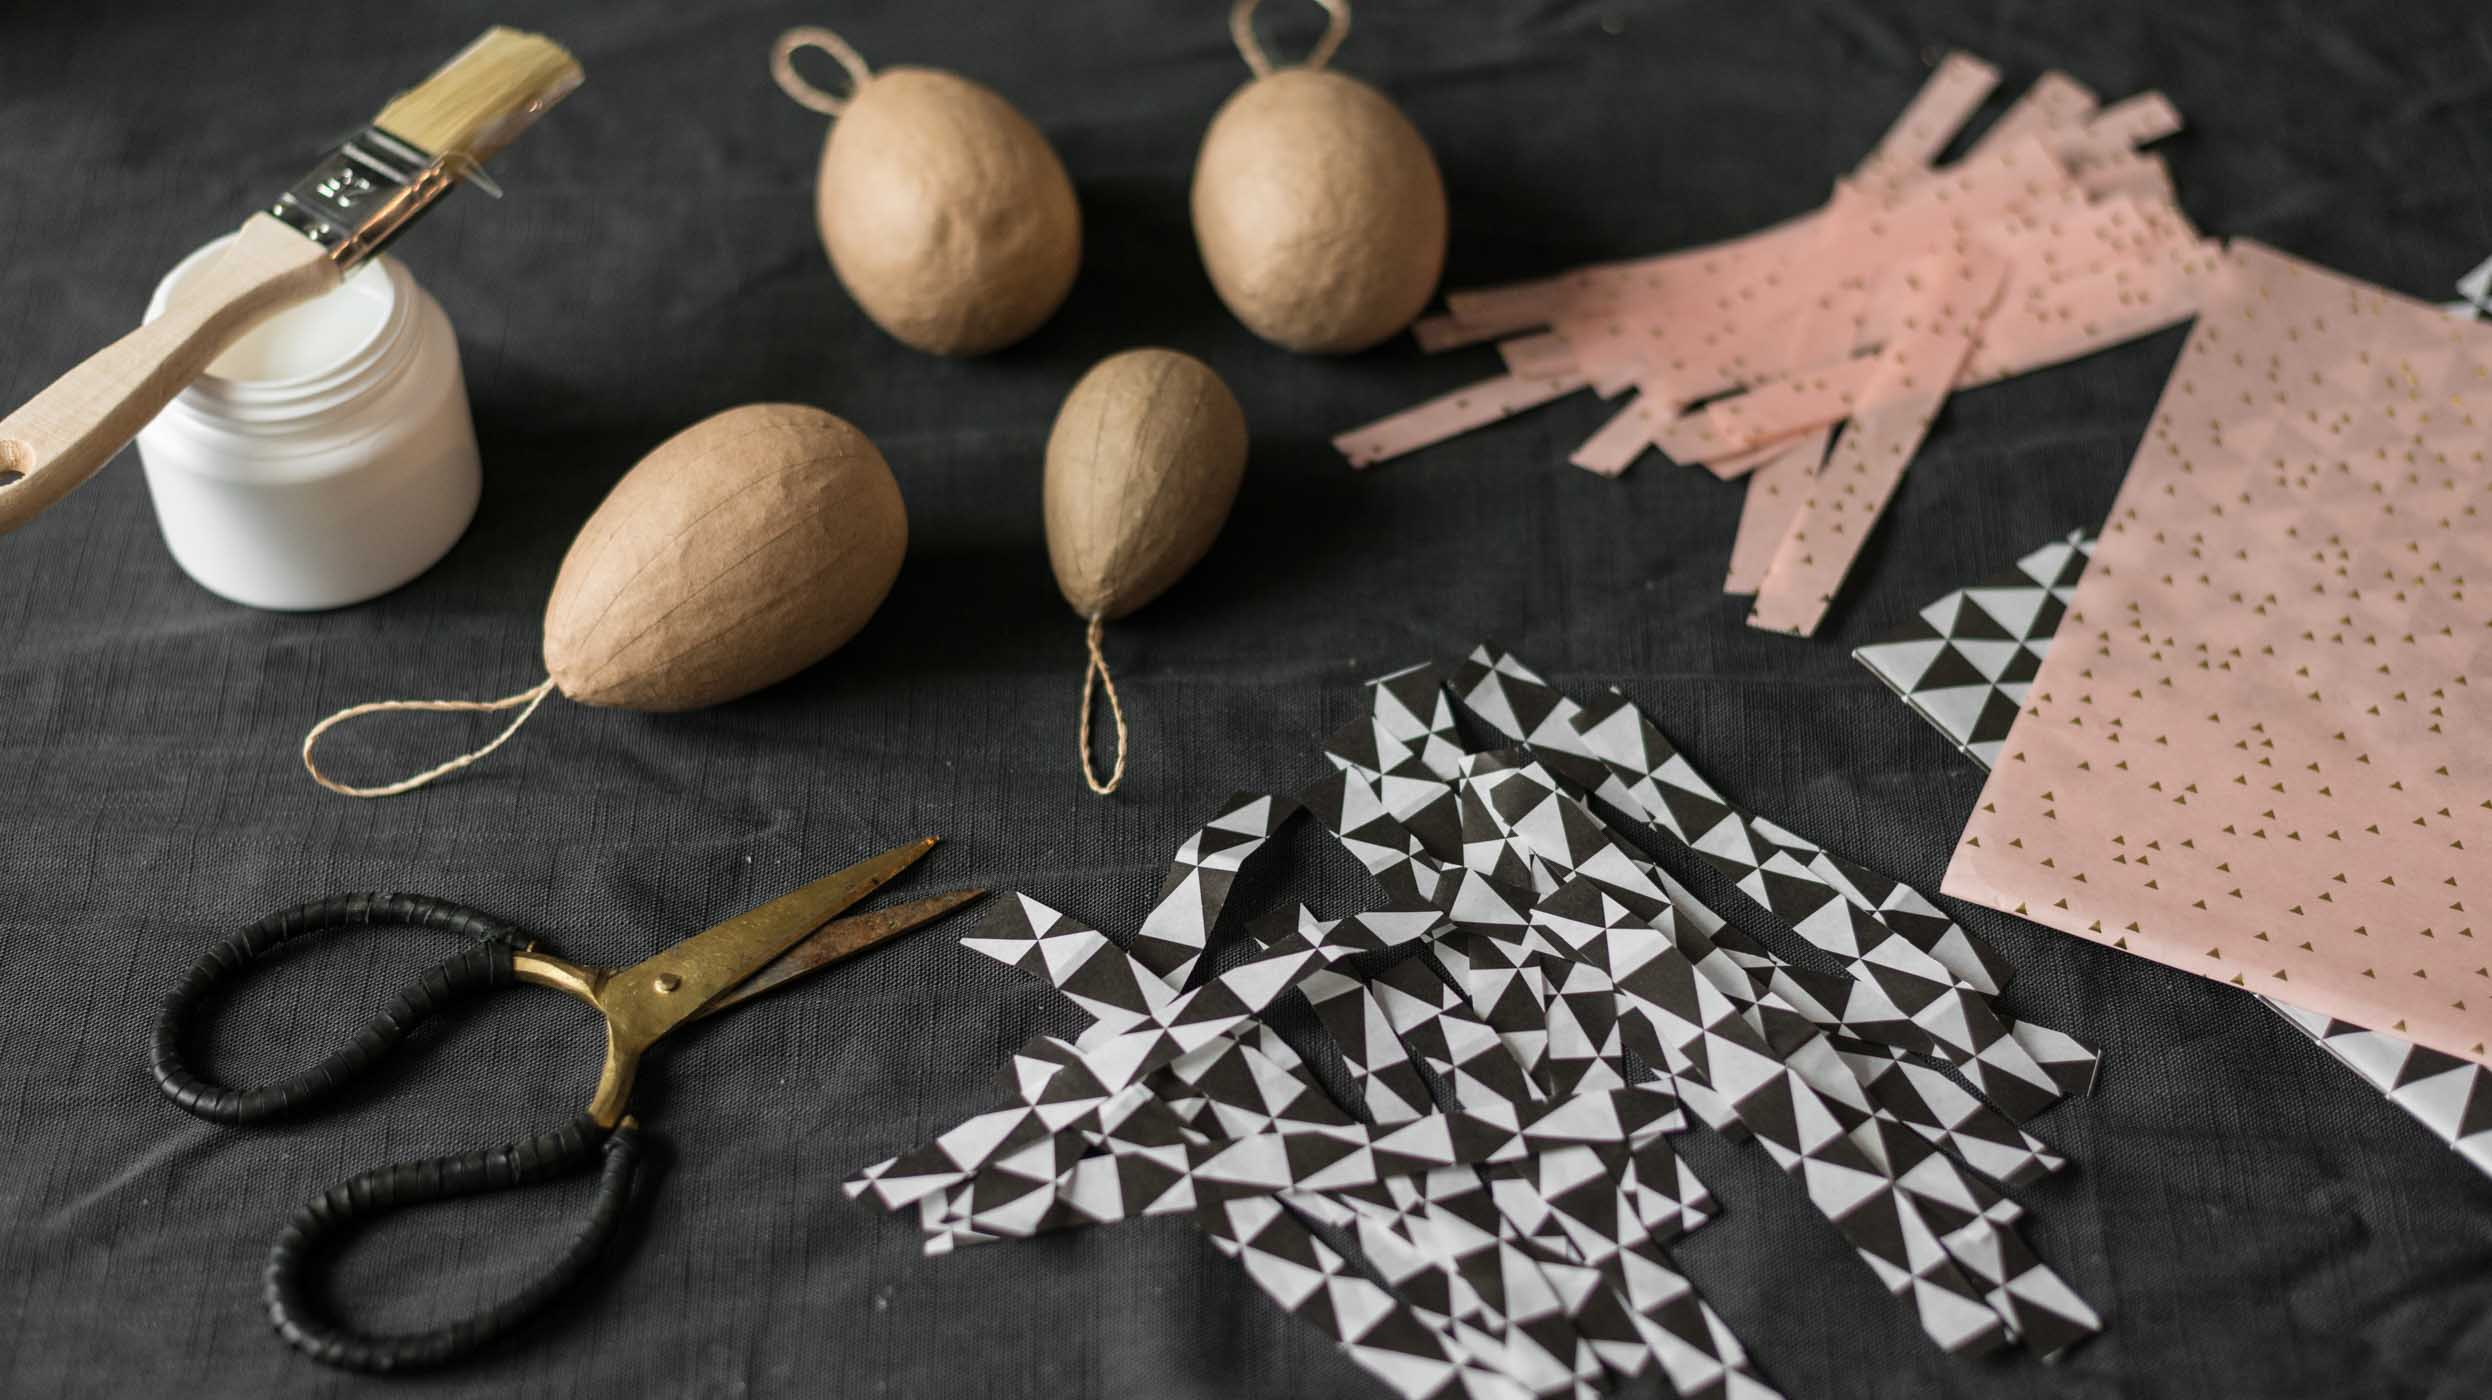 Ostern, Easter, DIY, Bastelideen, Idee, Anhänger, do it yourself, Ast, Schmuck, Feder, freemindedfolks, selbstgemacht, slow living, hygge